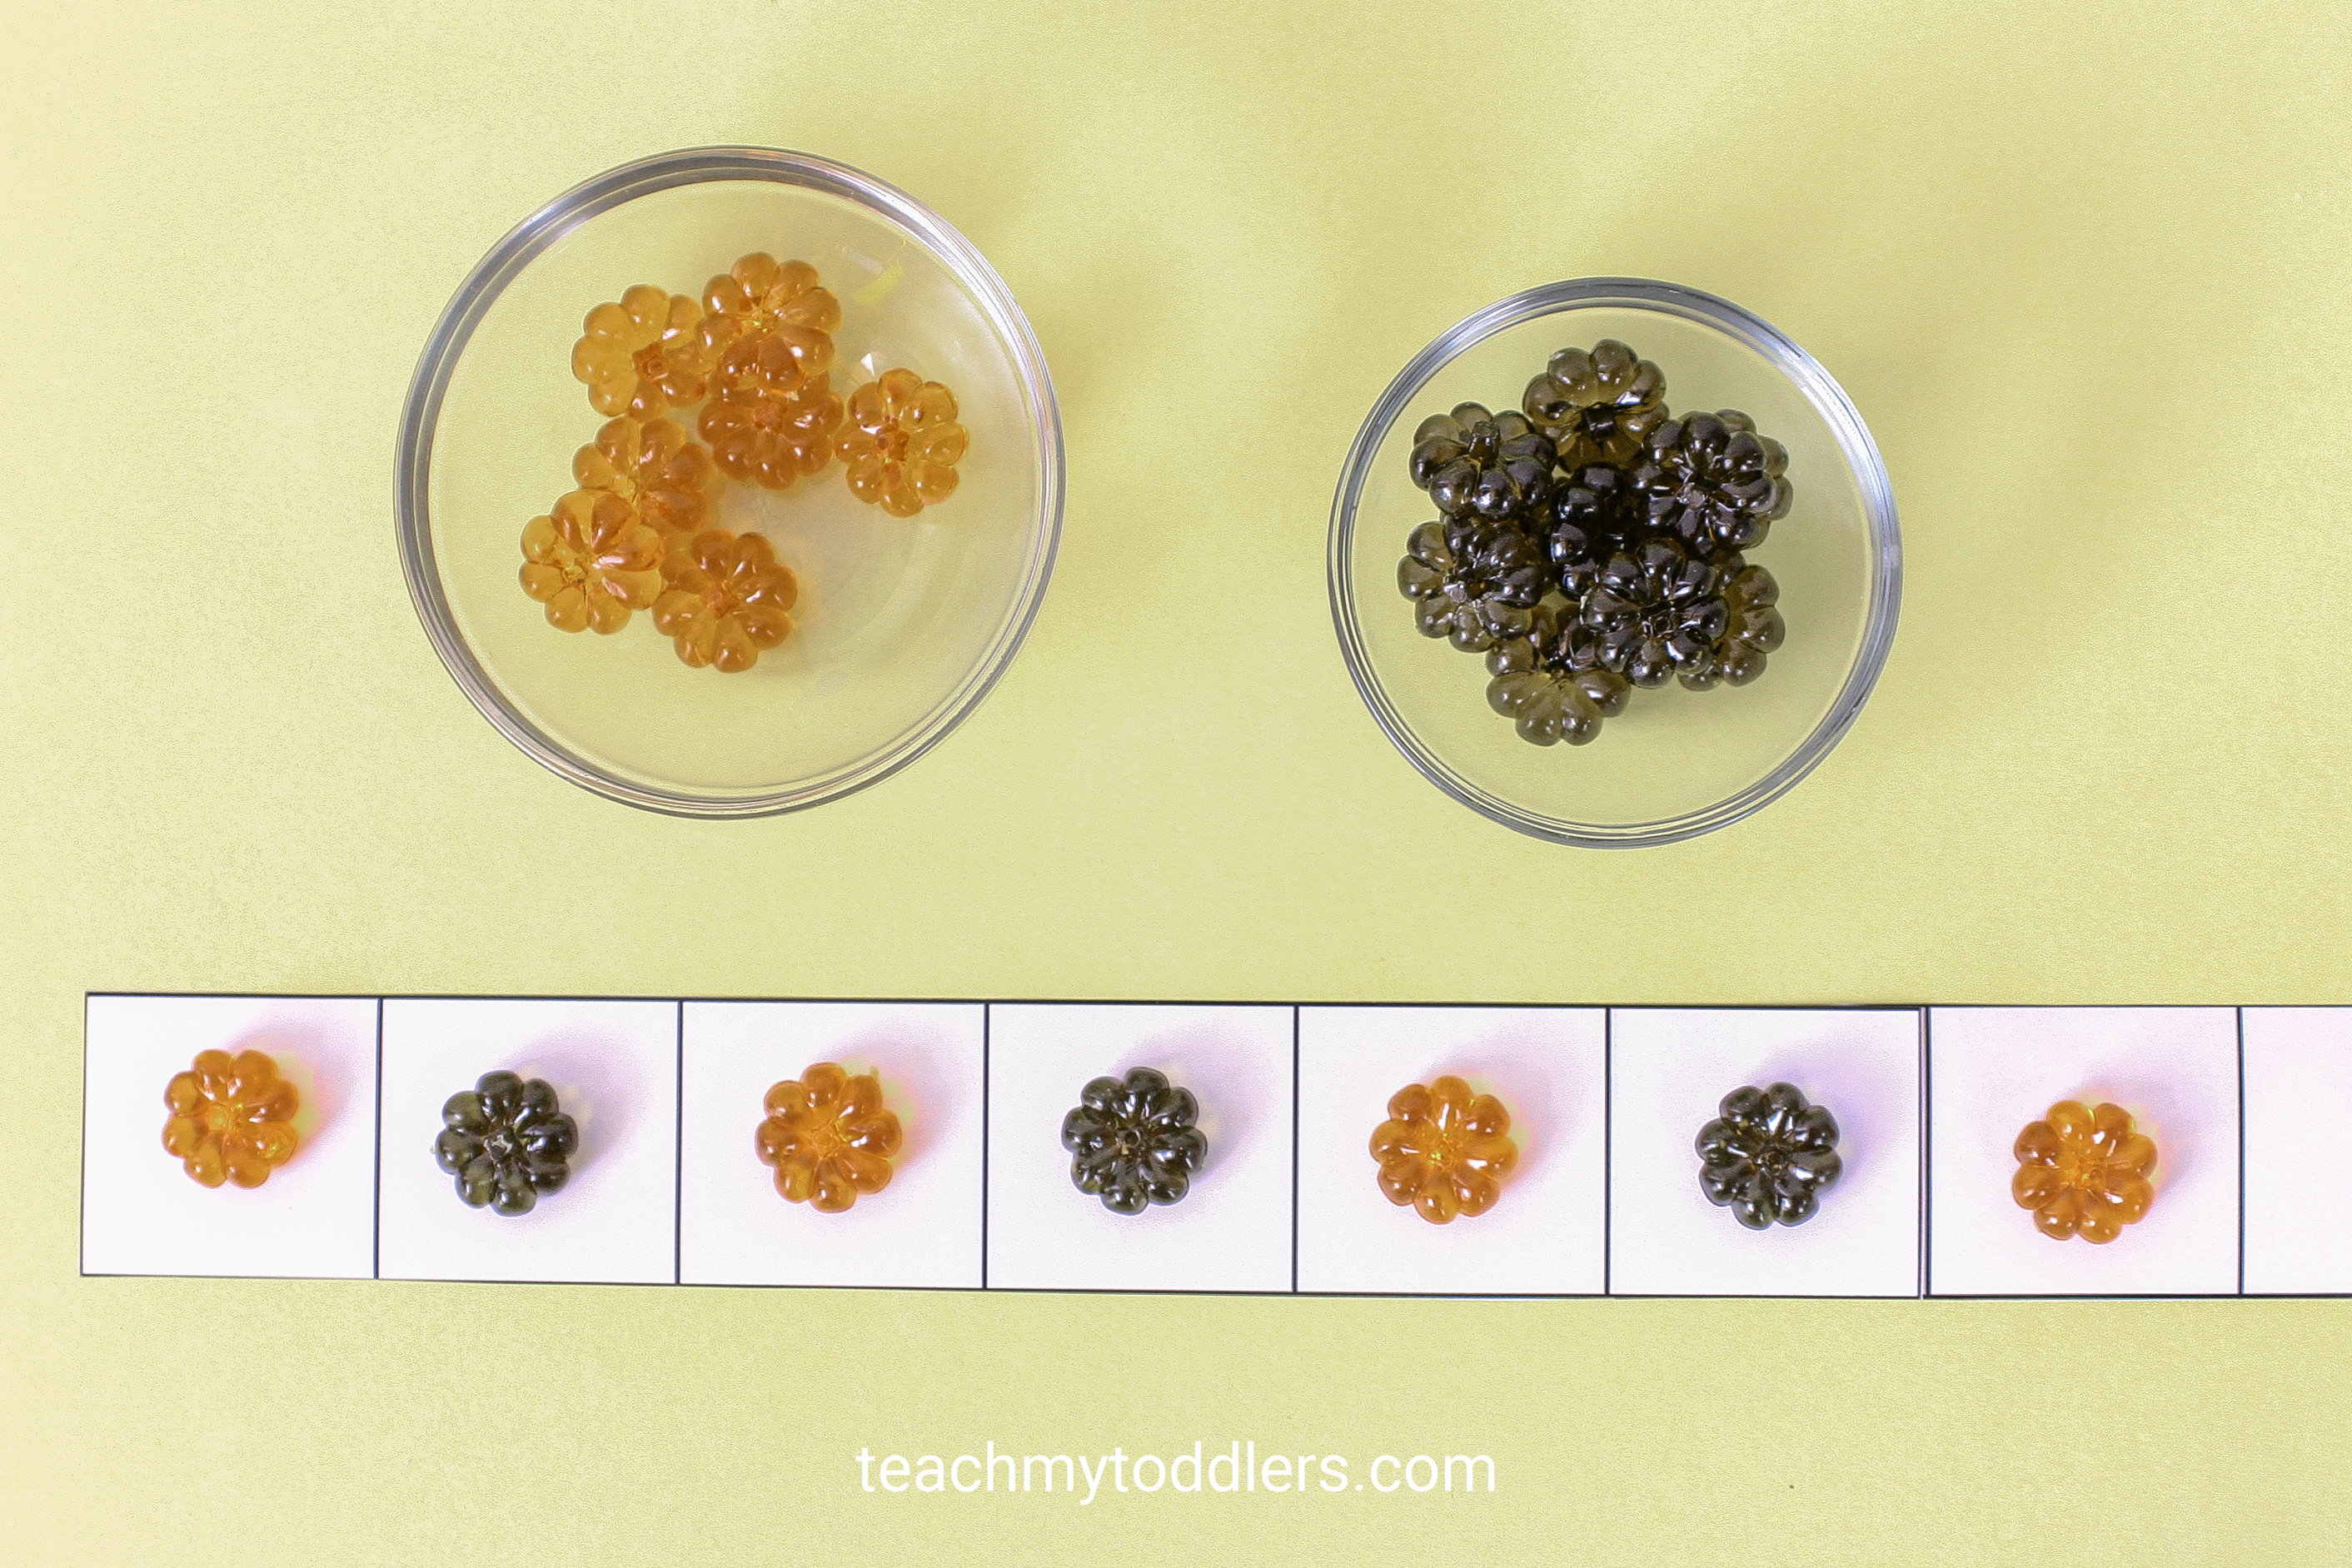 Discover how to use these table scatter activities to teach toddlers math